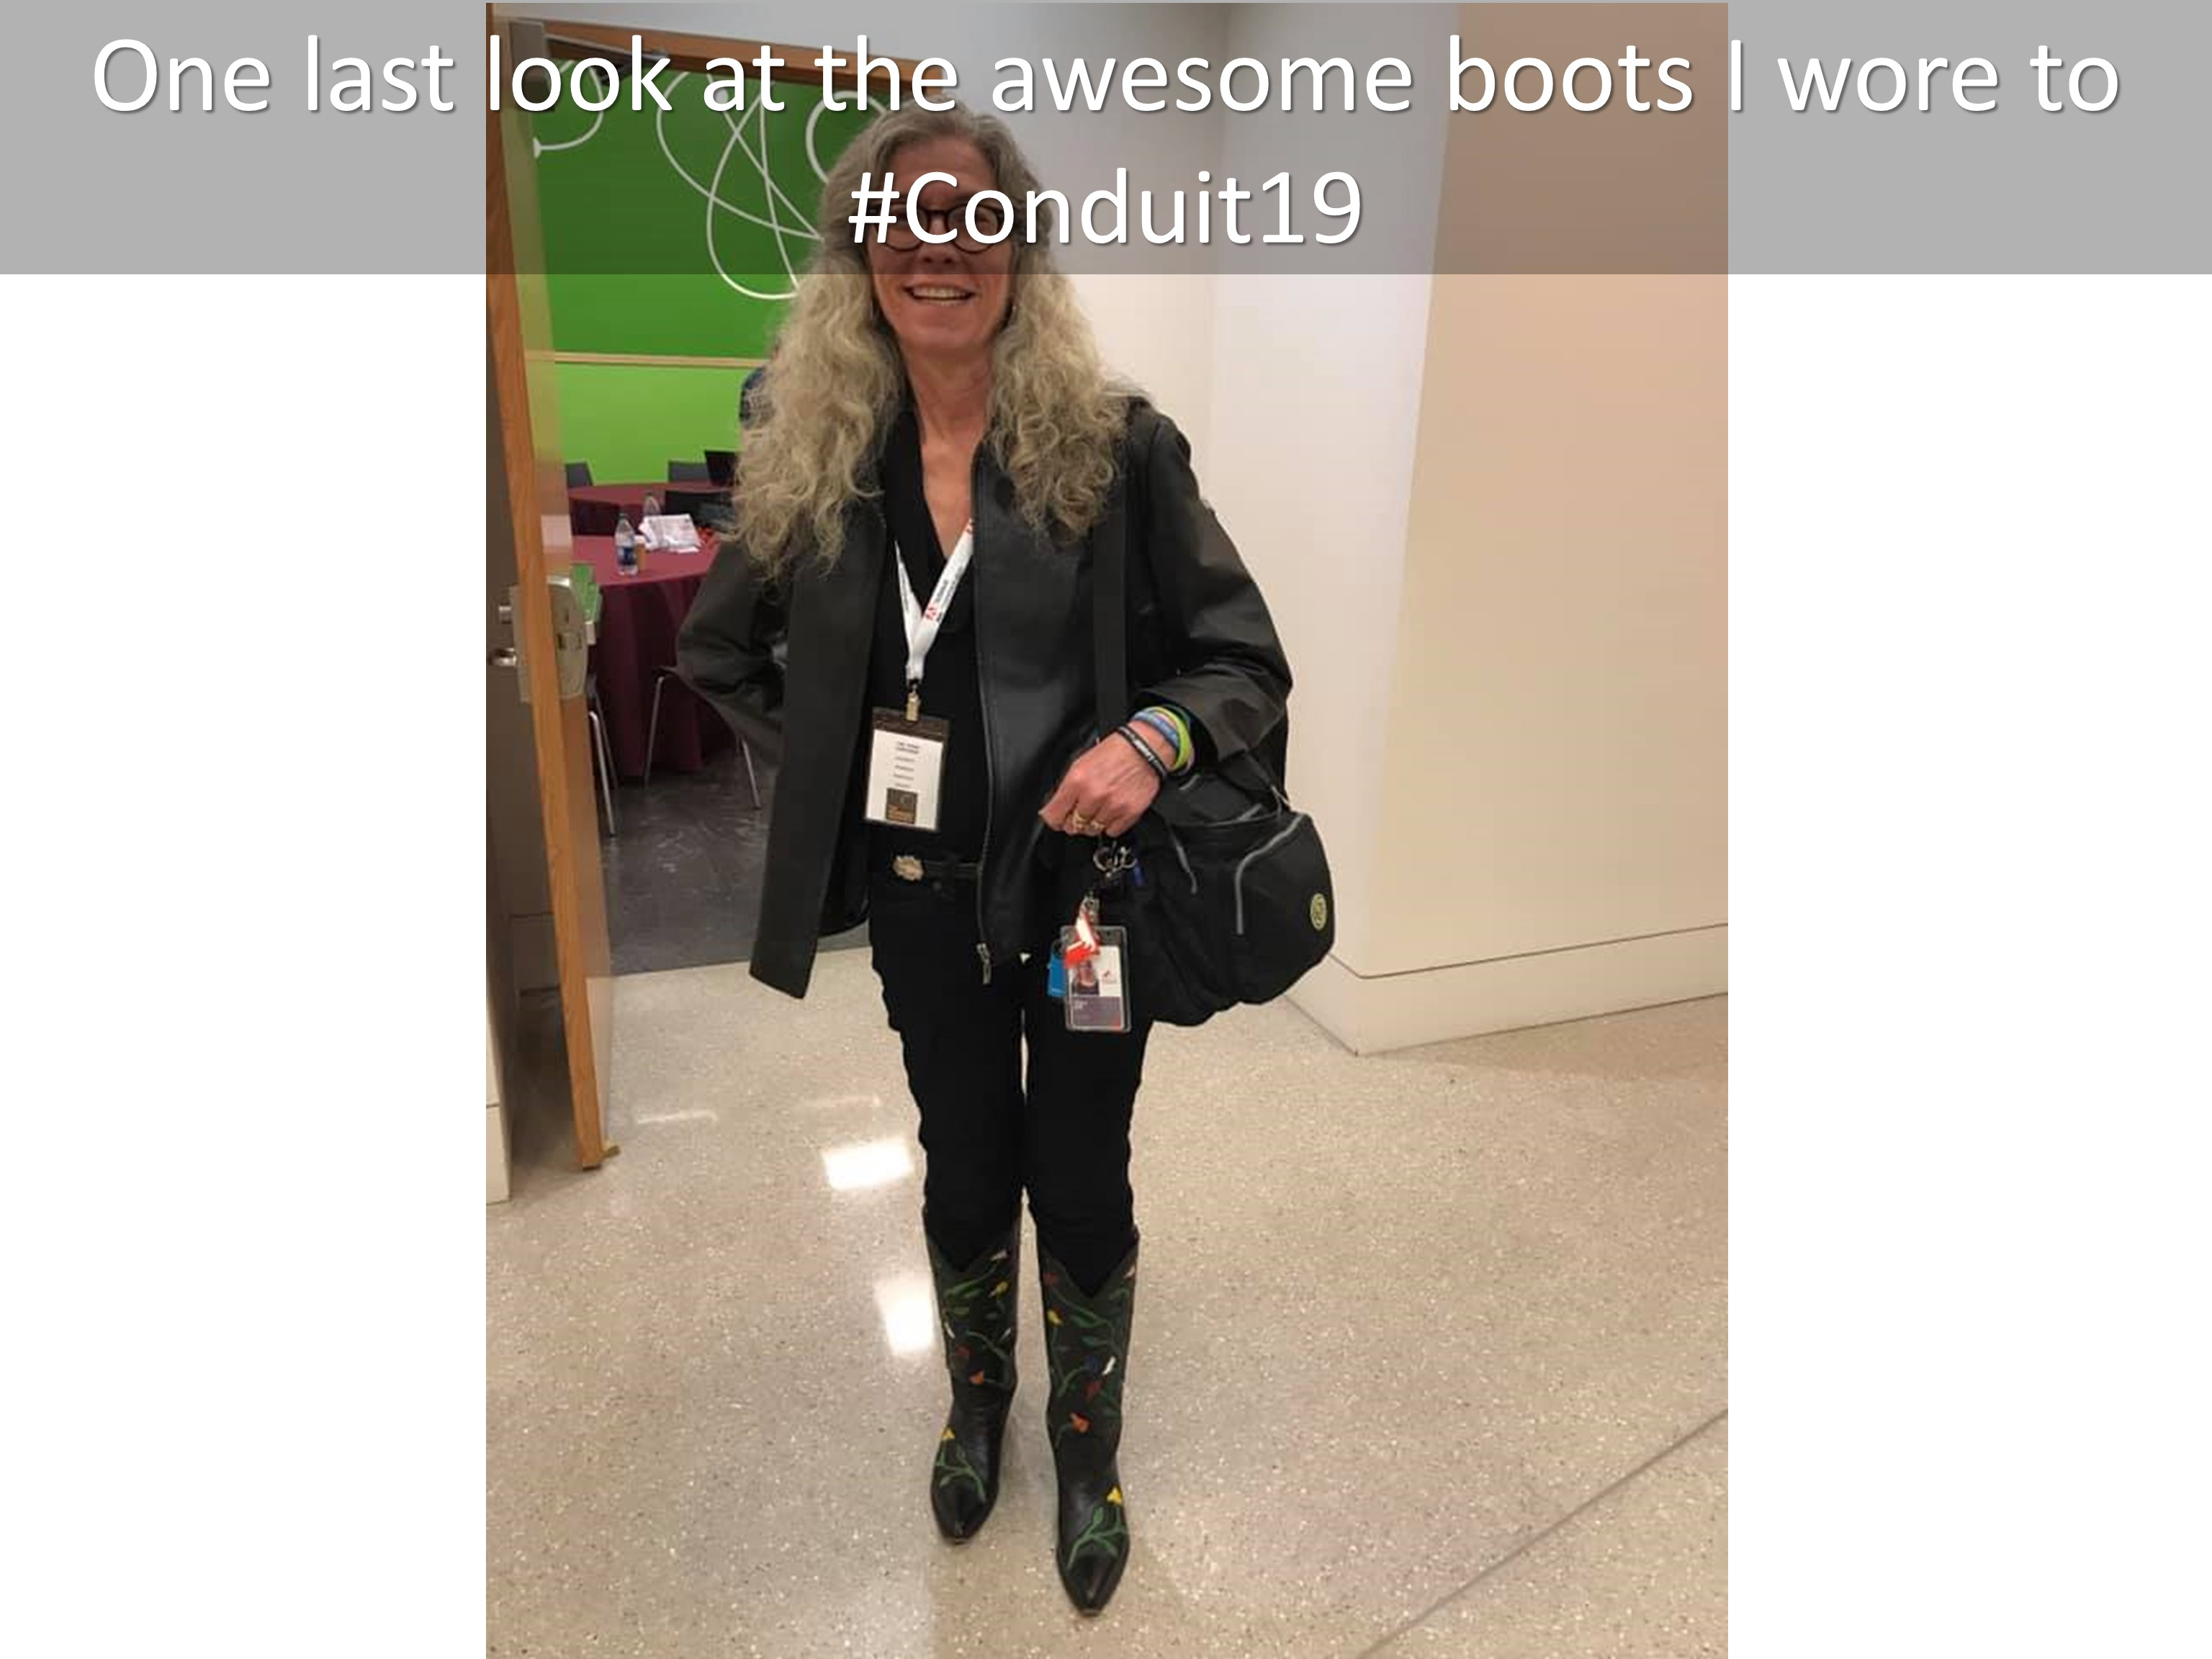 24 One last look at the awesome boots I wore to Conduit19